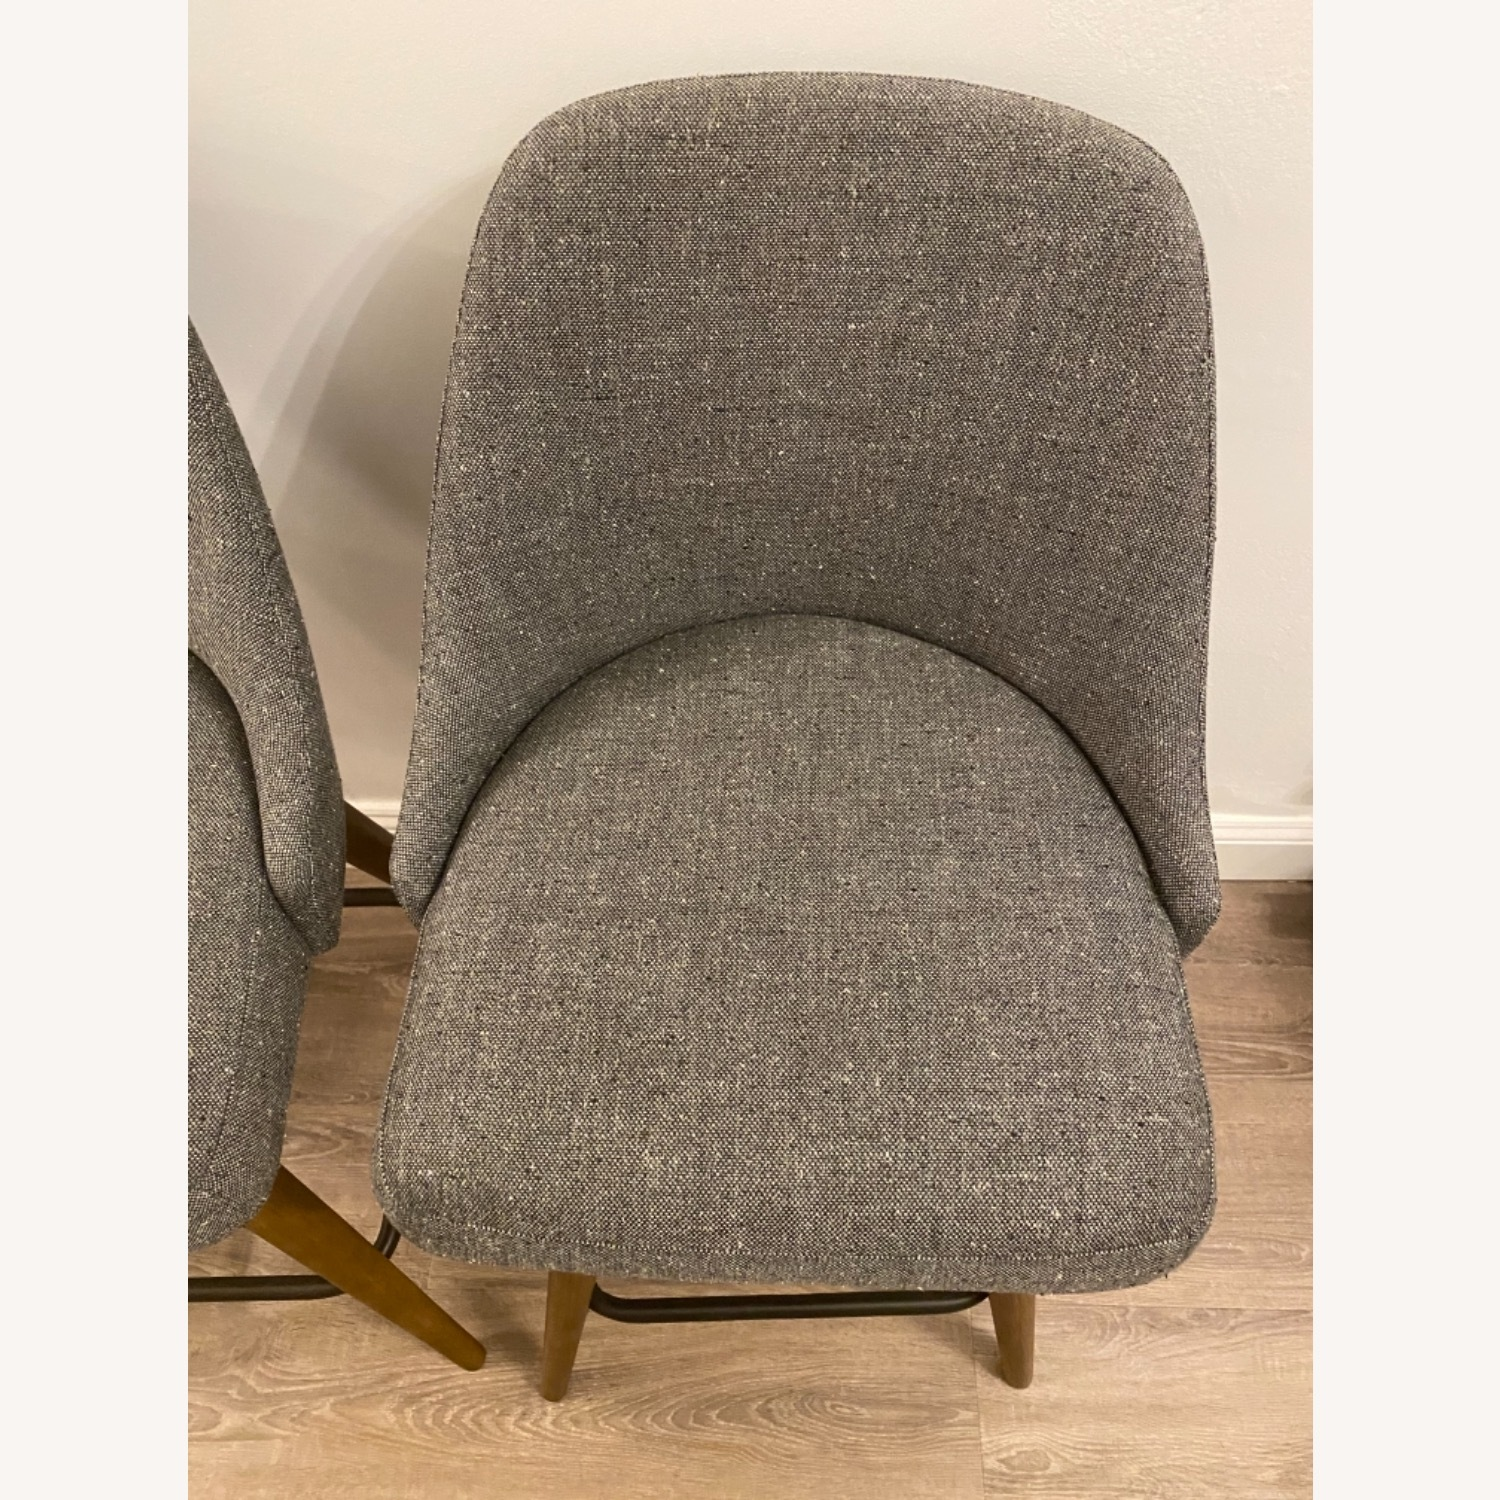 West Elm Upholstered Counter Stools - image-8